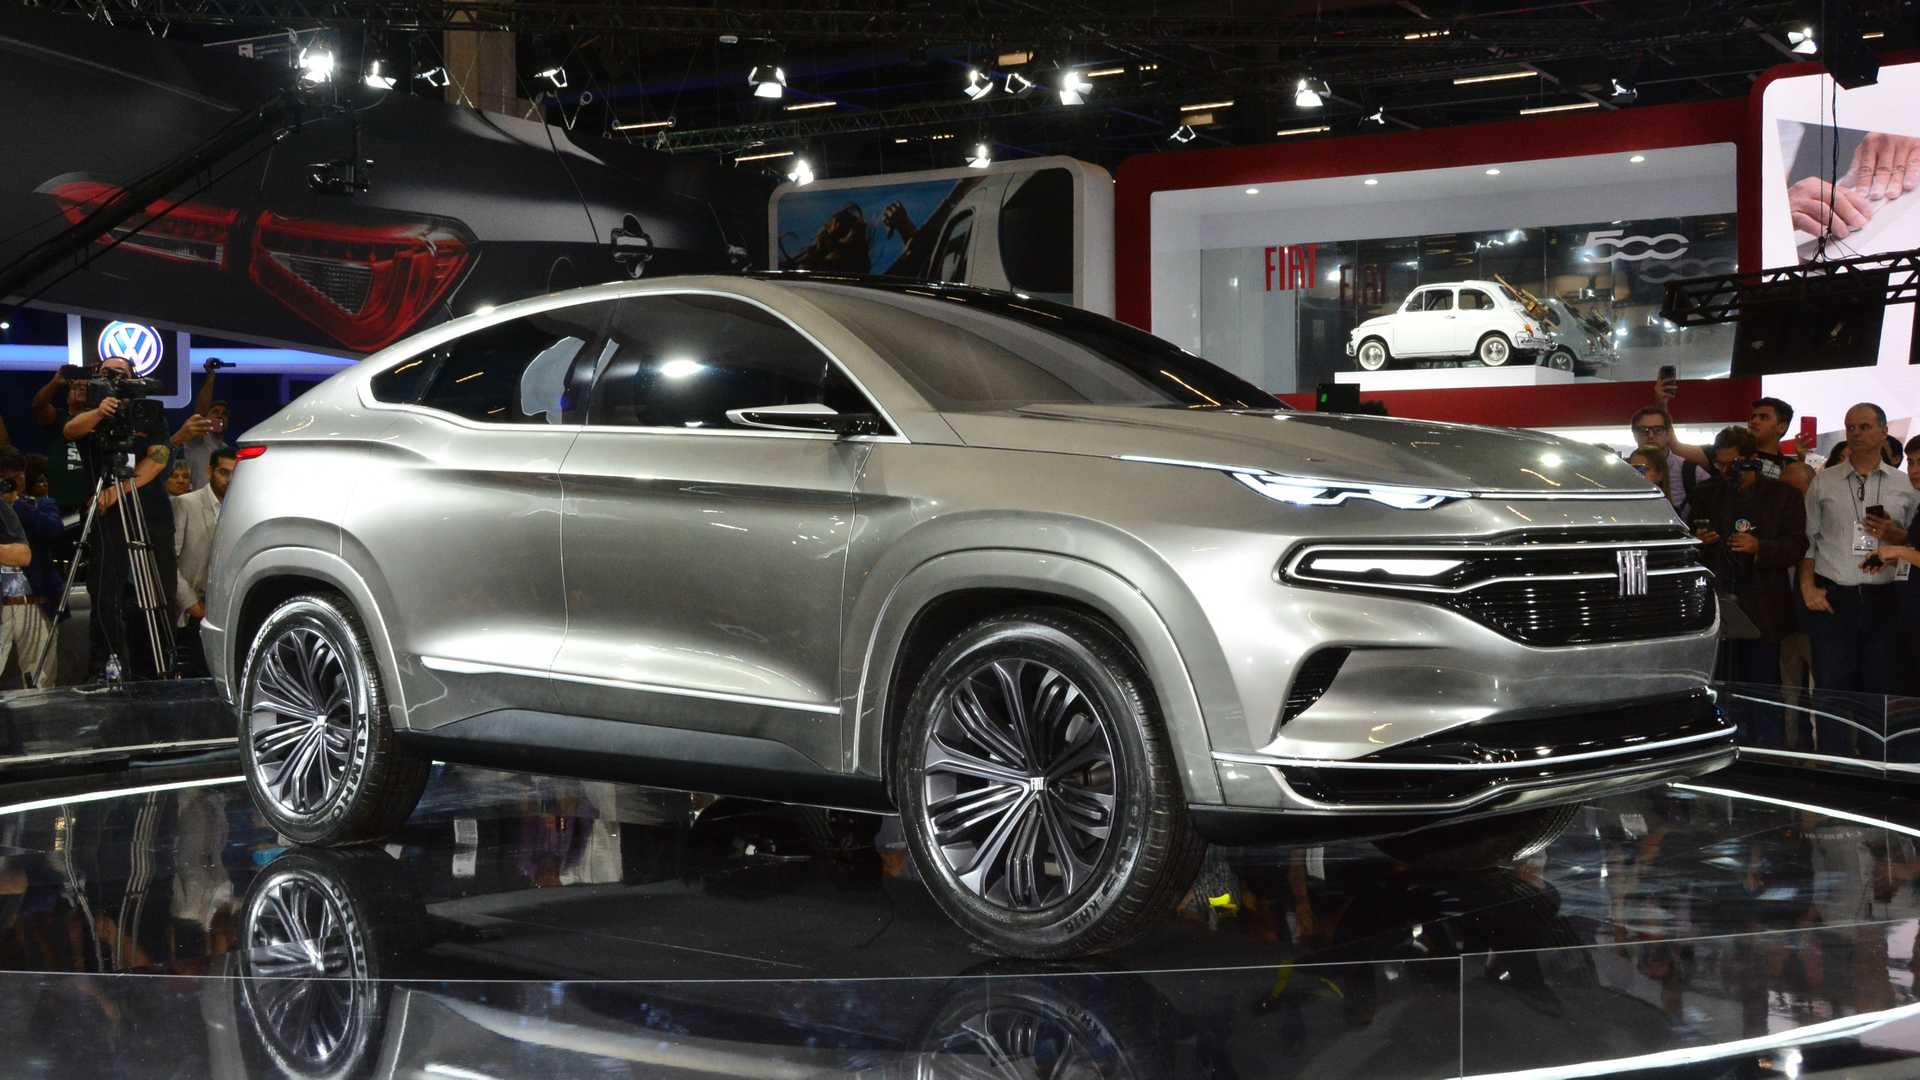 35 New Fiat Suv 2020 Images